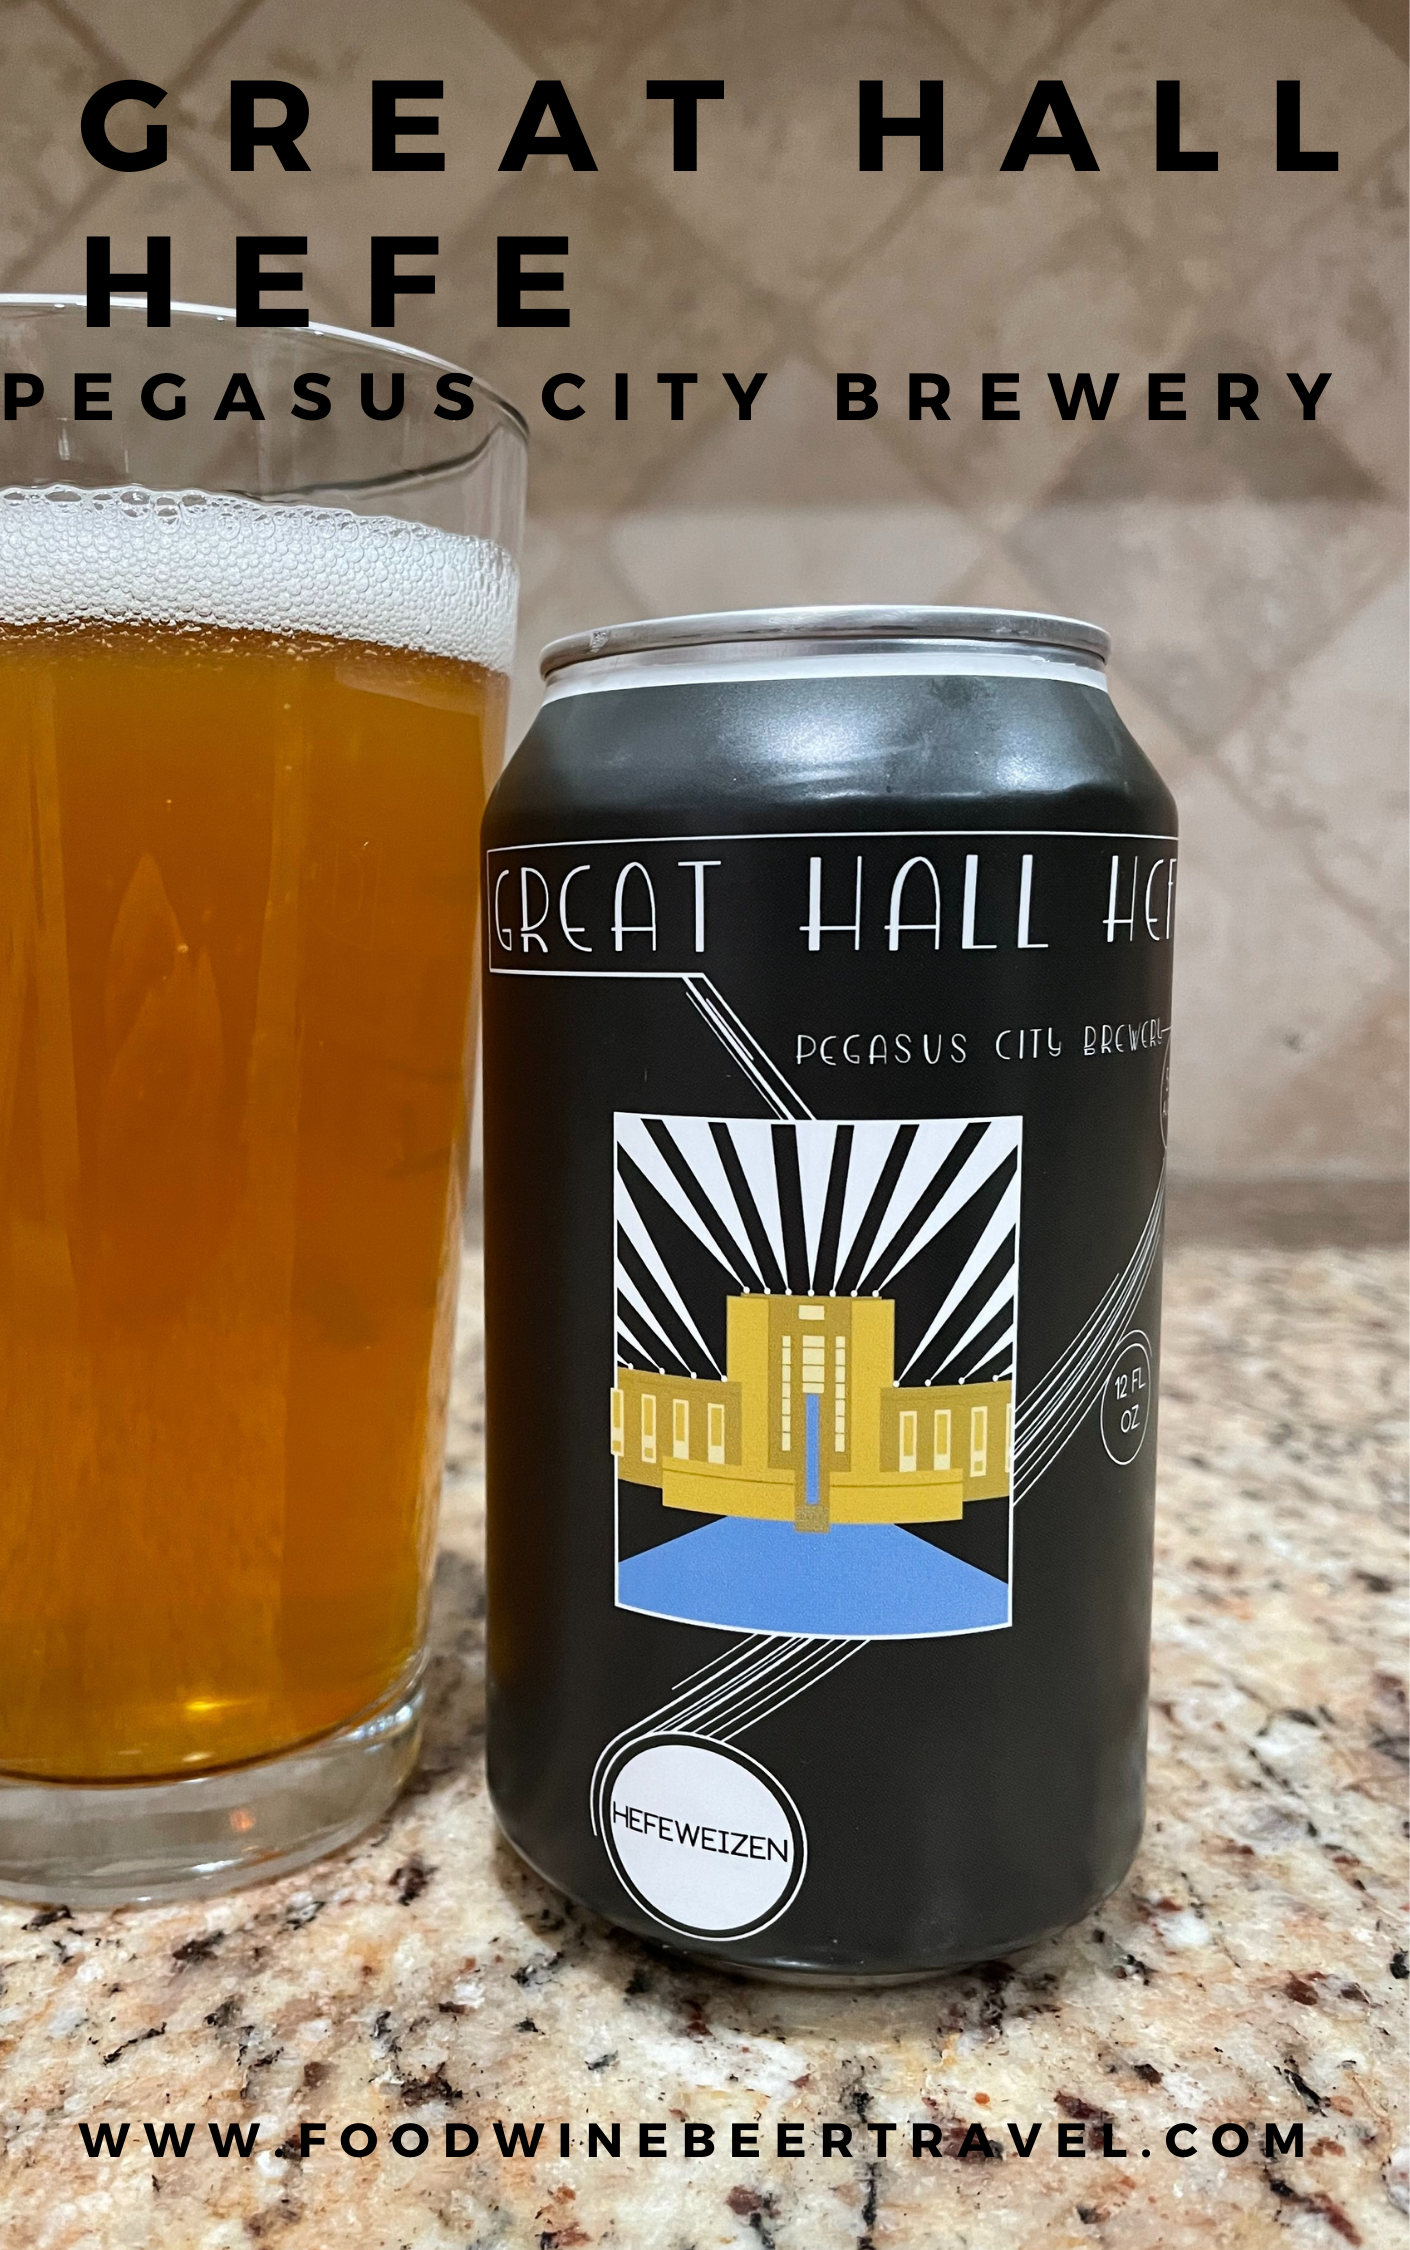 A Pinterest Pin of a can of Great hall Hefe from Pegasus City Brewery is next to a pint glass filled with a dark golden amber beer with a white head floating on top.